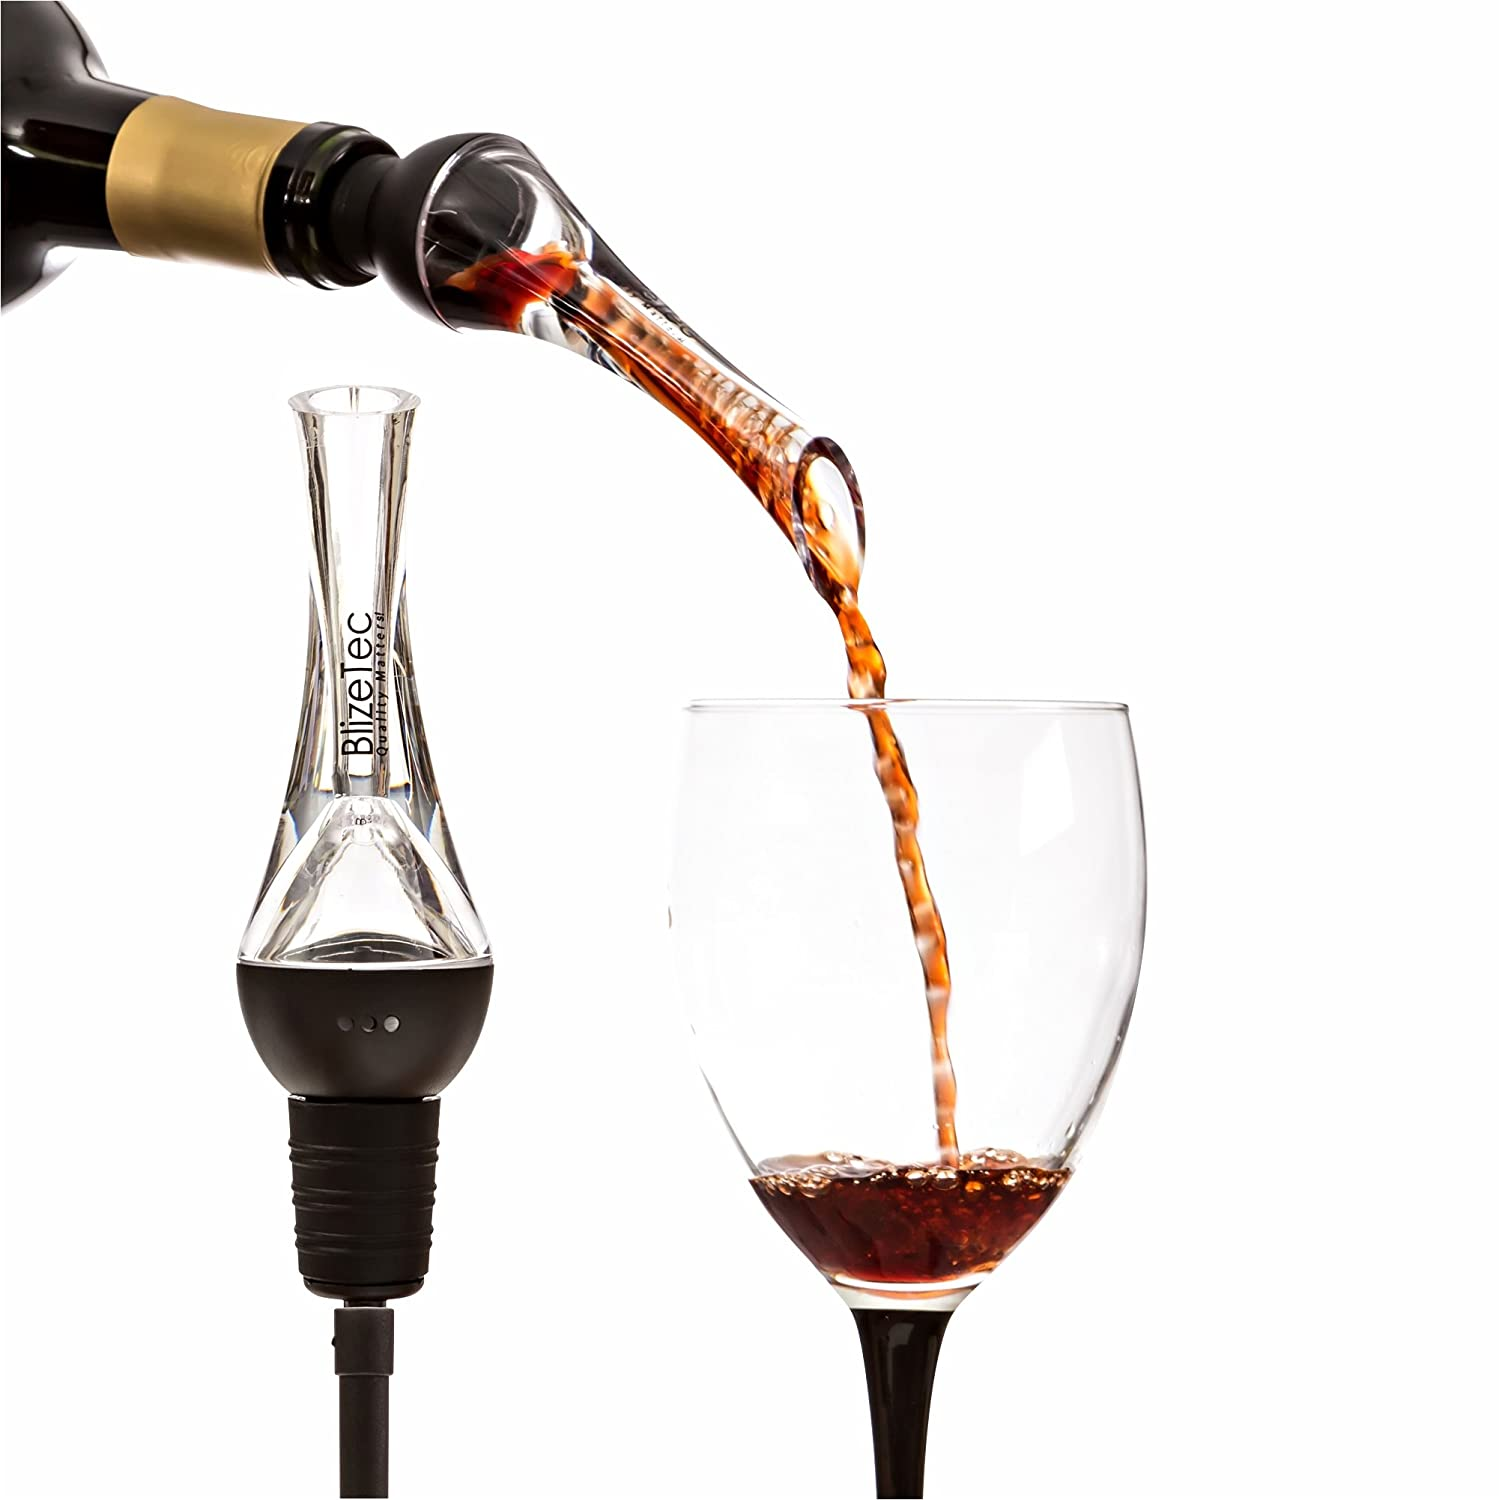 Wine Aerator Pourer: BlizeTec 2-in-1 Aerating Pourer with Decanter Spout